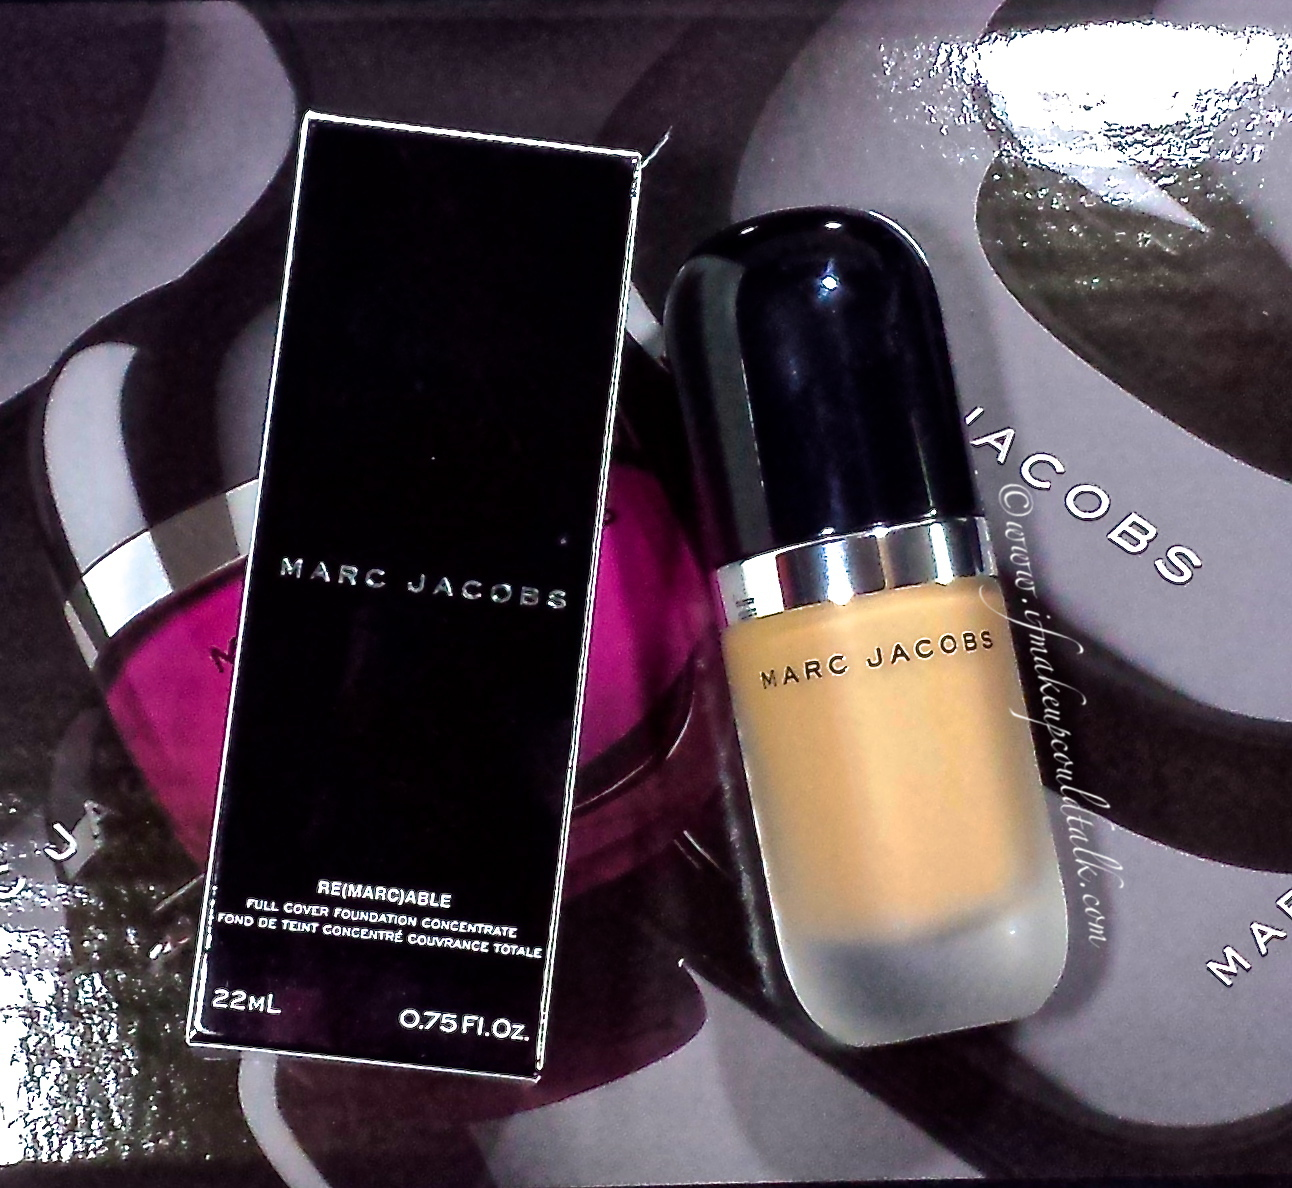 Marc Jacobs Remarcable Full Coverage Foundation Concentrate review.